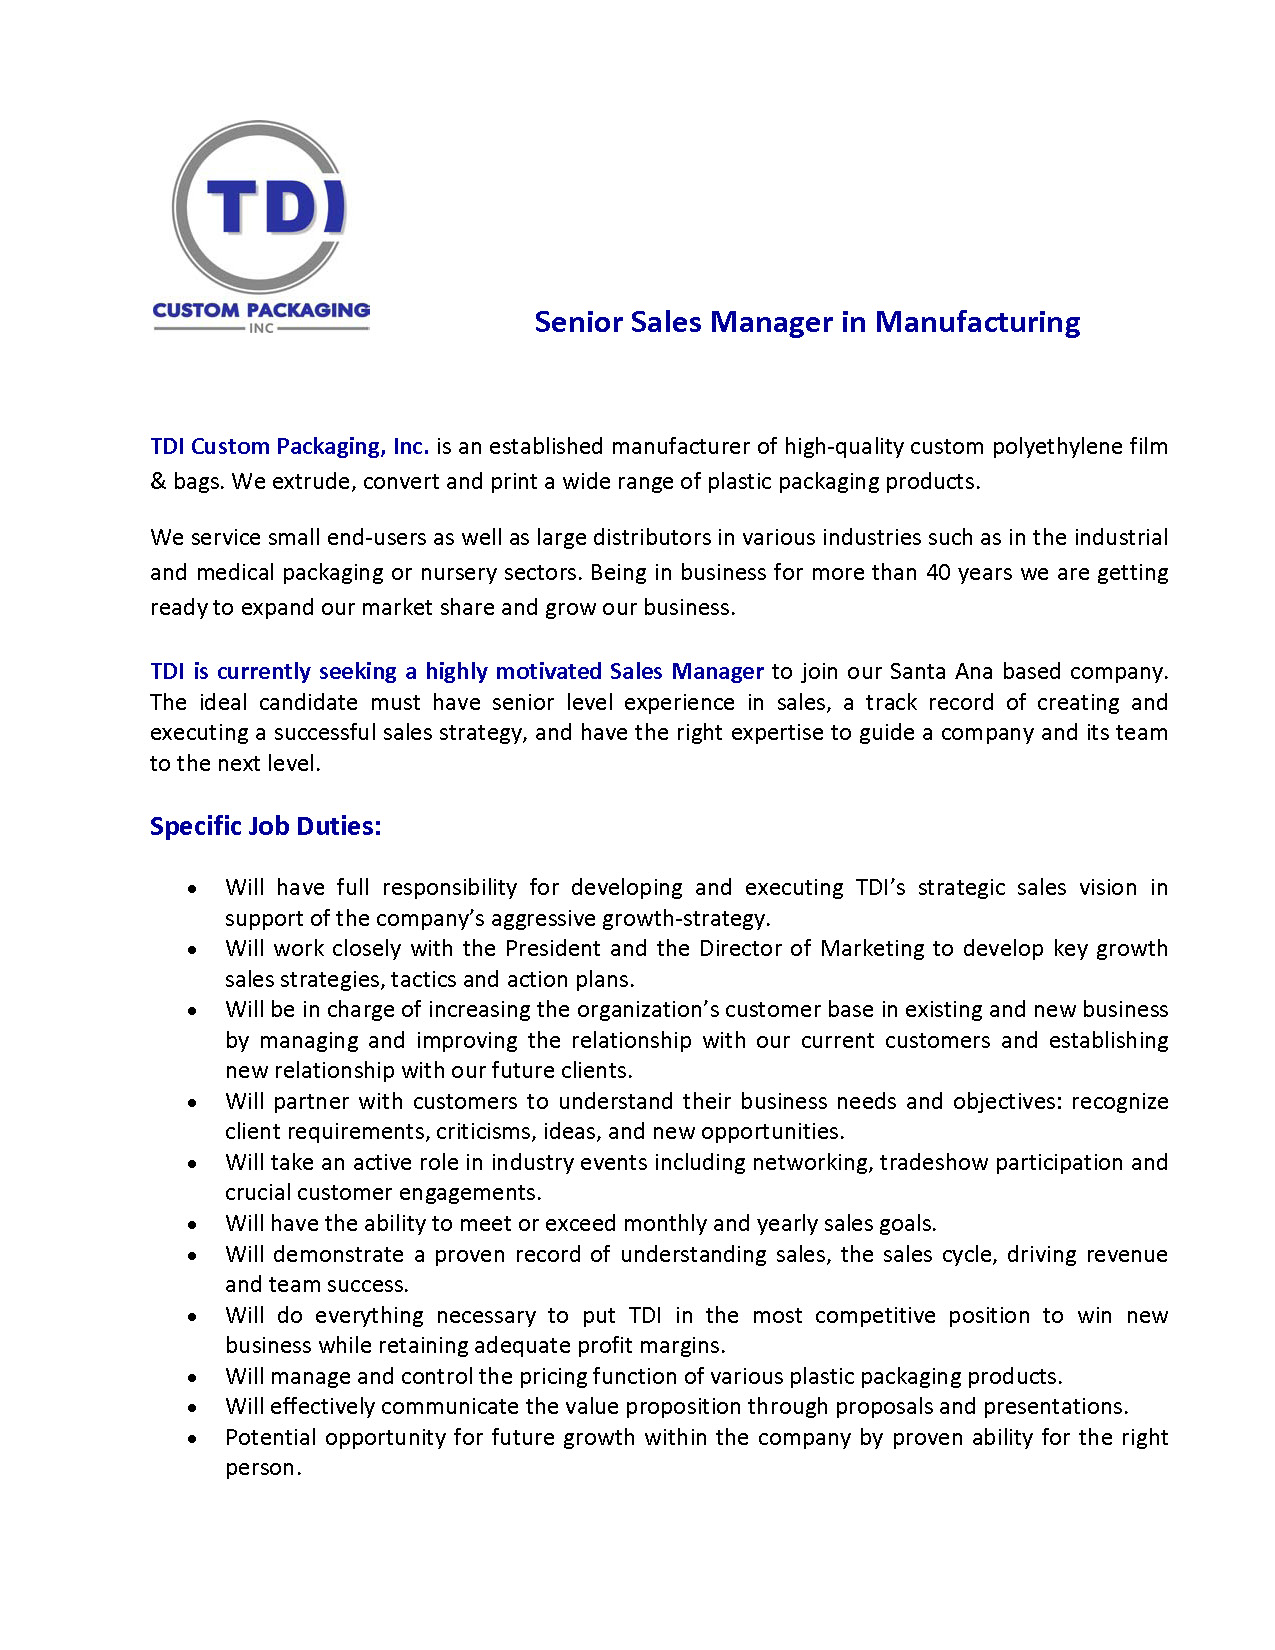 TDI Custom Packaging is hiring a SENIOR SALES MANAGER